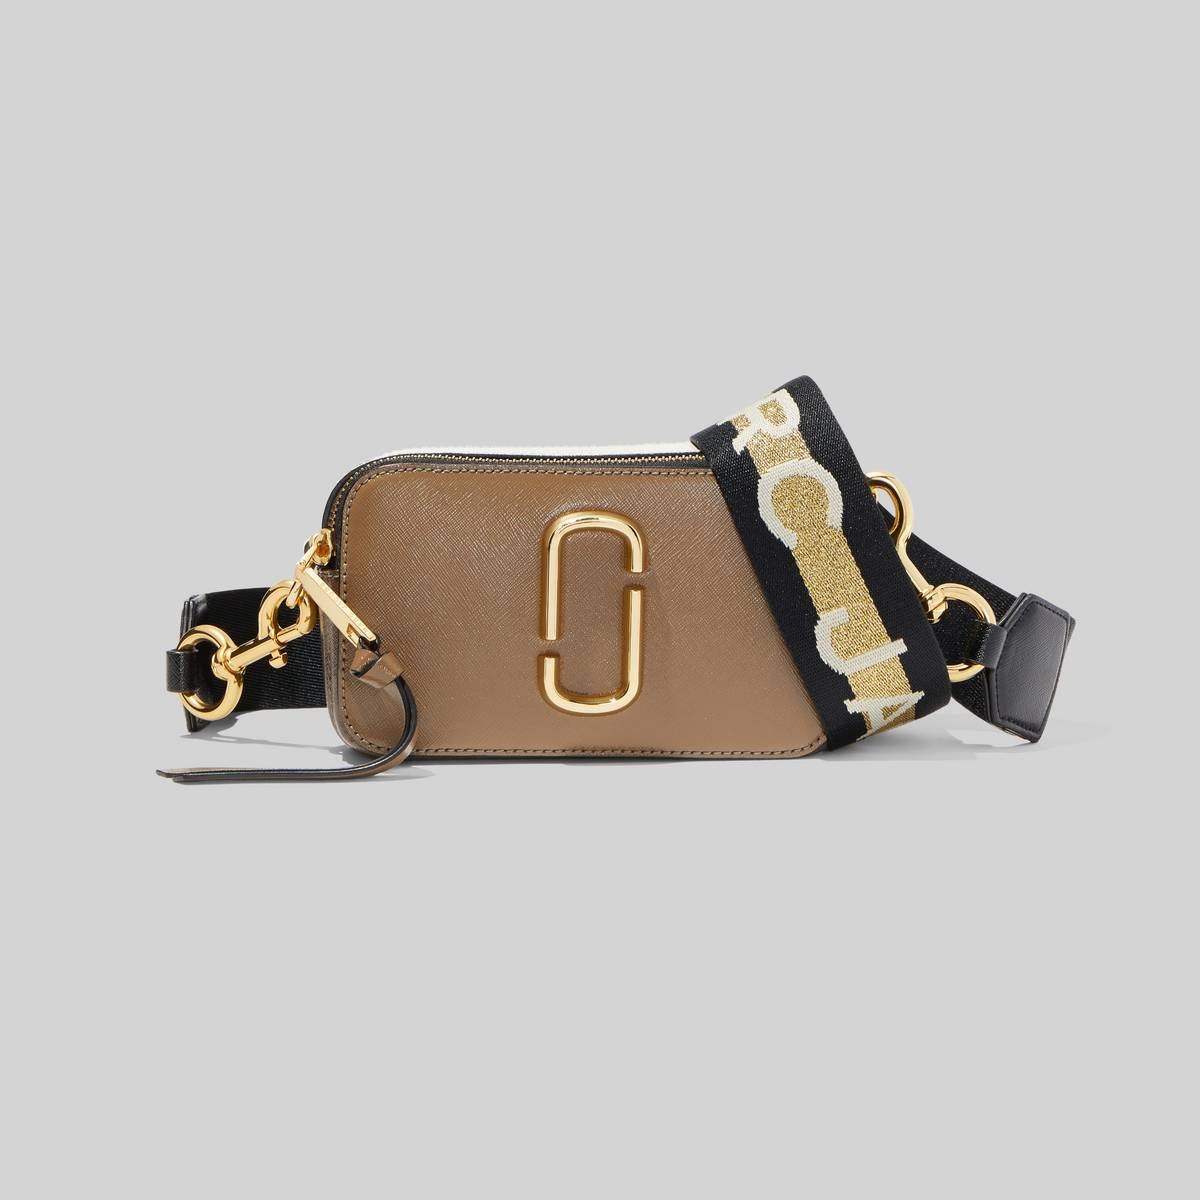 Small camera-style bag in Saffiano leather with an adjustable, logo crossbody strap. | MARC JACOBS Women\\'s The Logo Strap Snapshot Bag in French Grey Multi